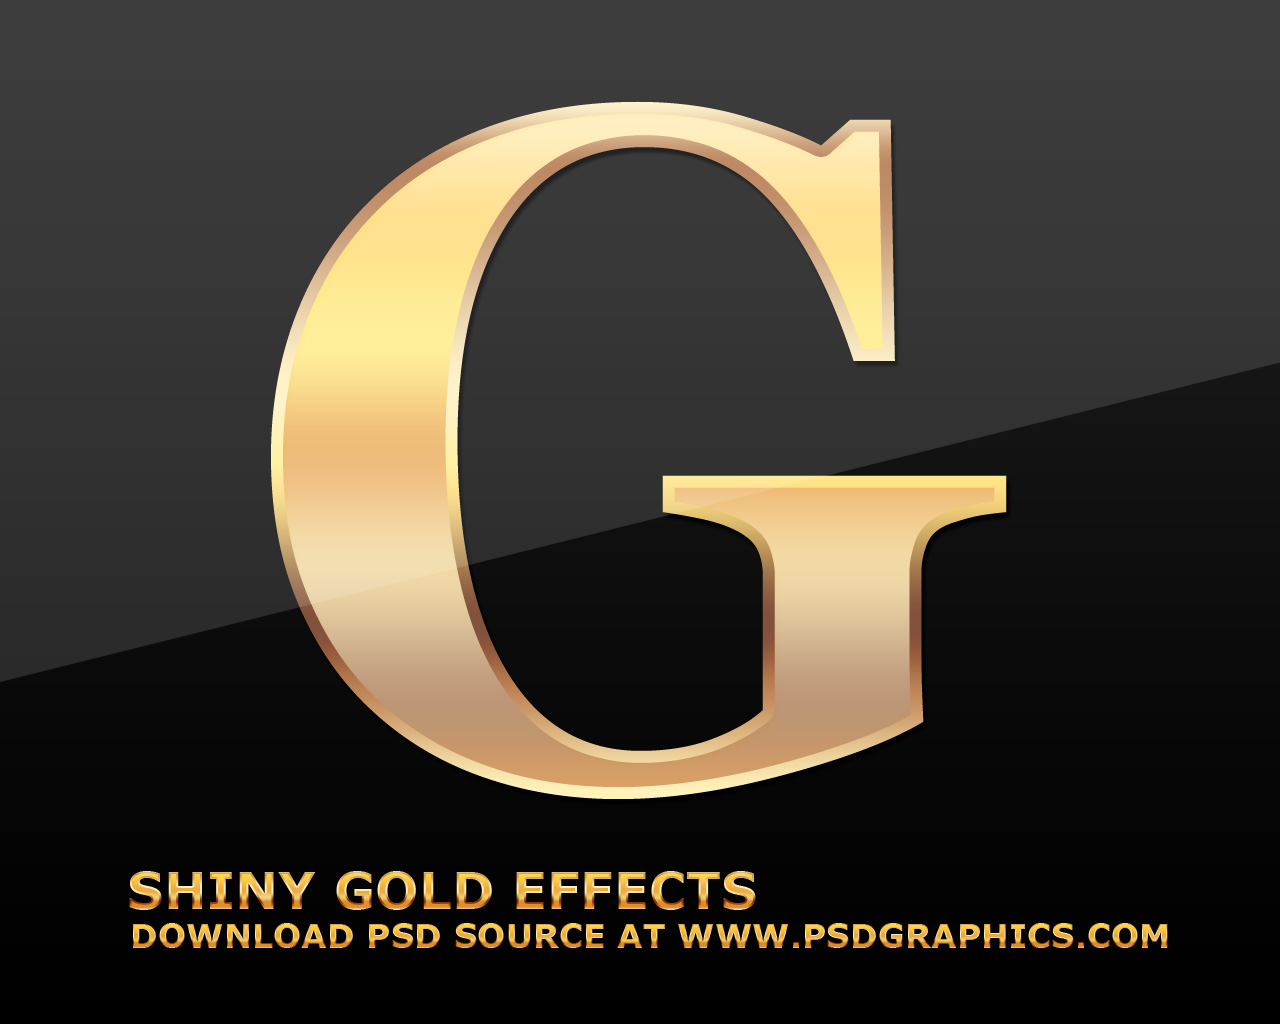 Gold text effects in photoshop psdgraphics gold letter effect baditri Choice Image